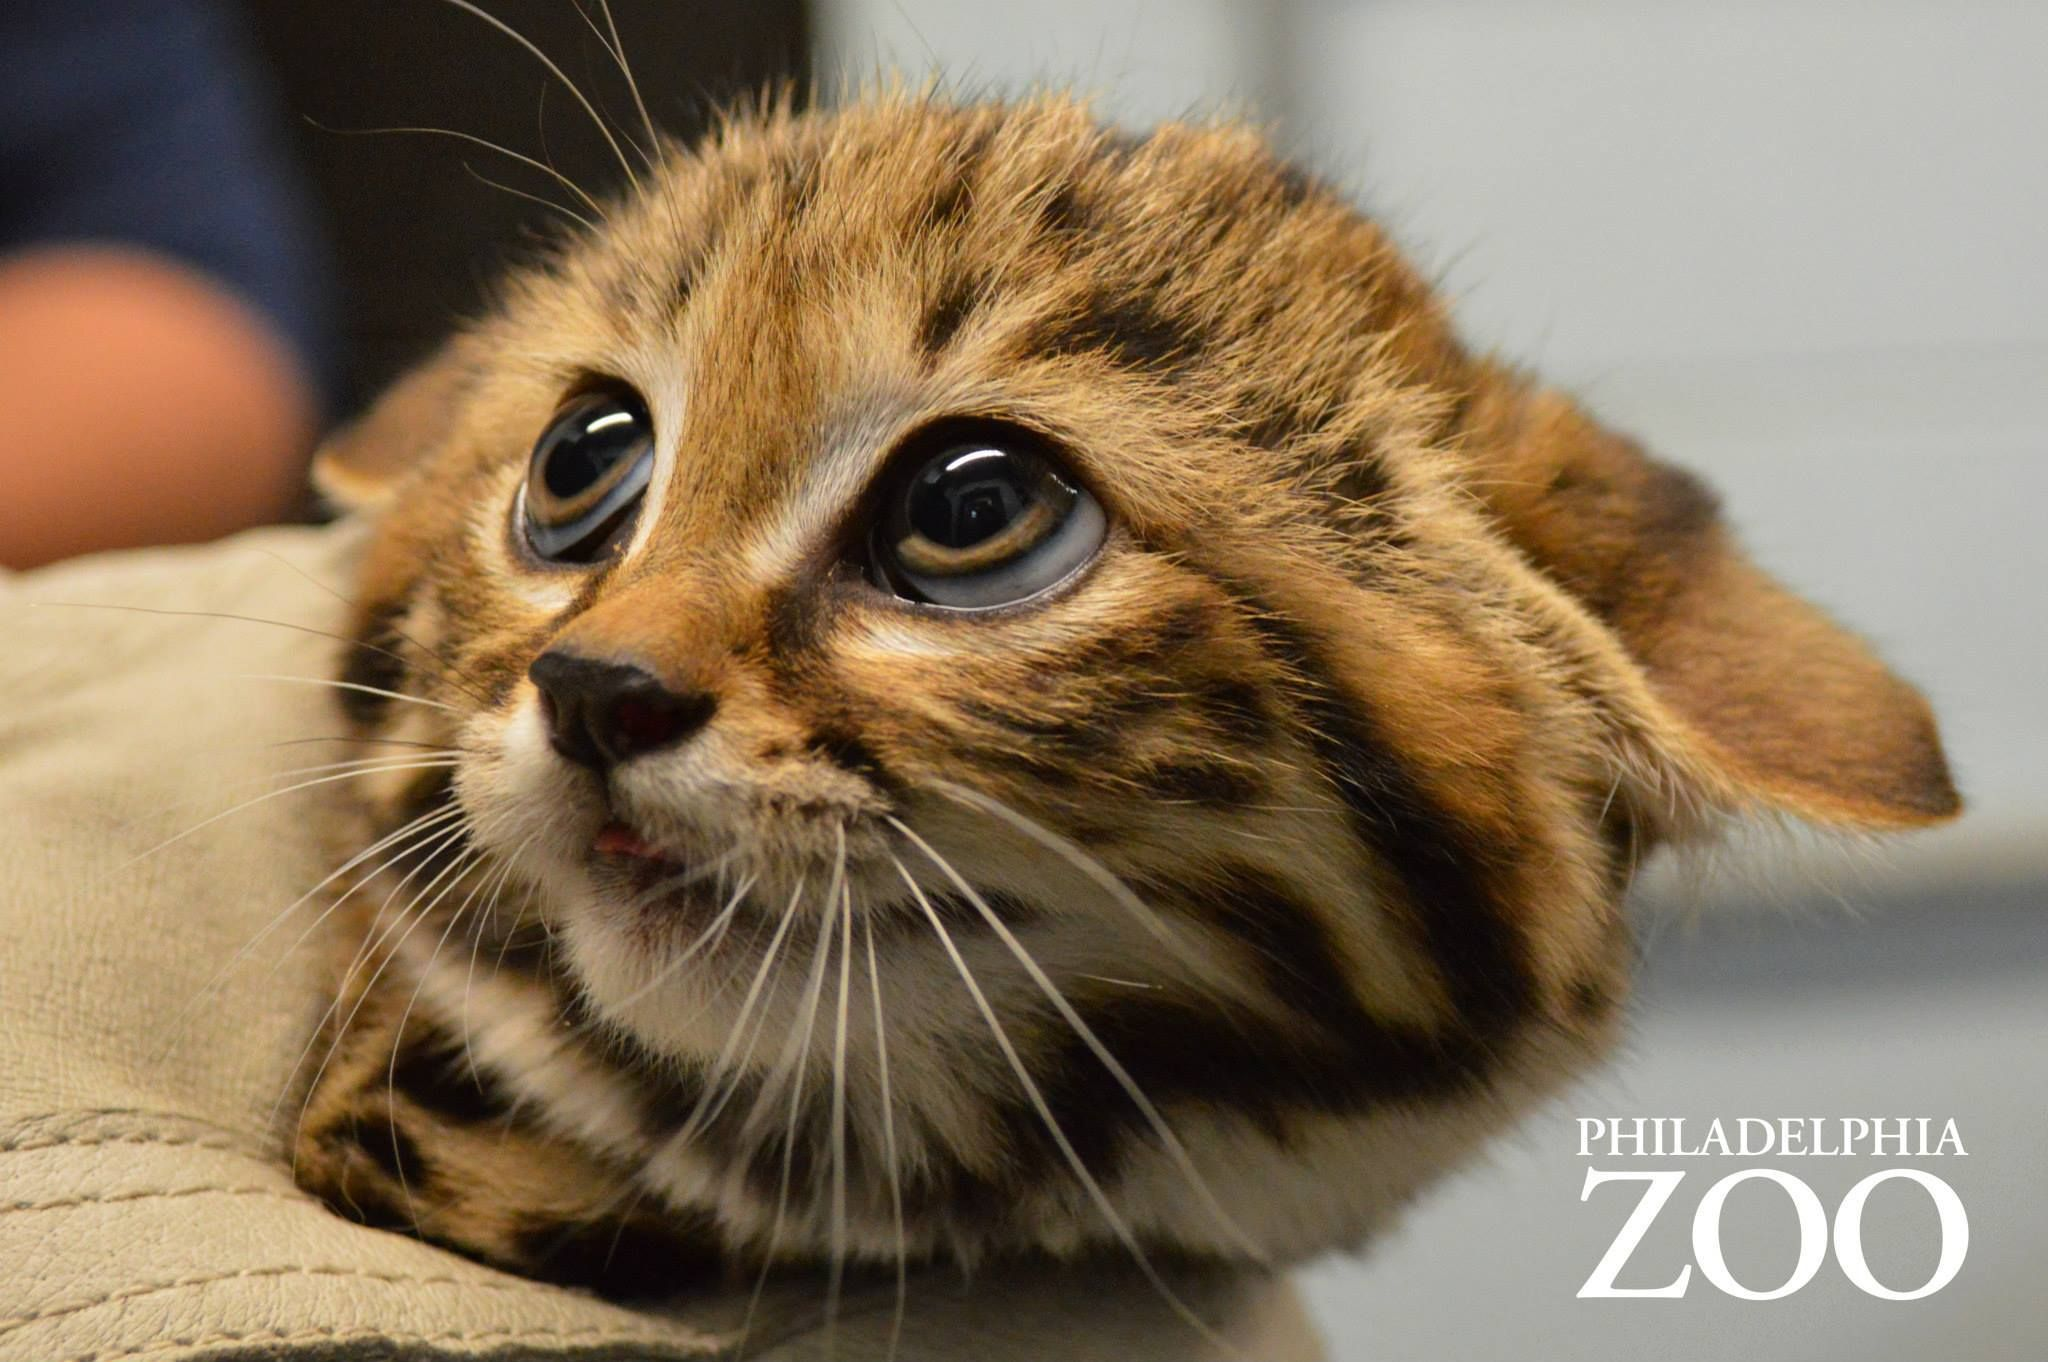 Philadelphia Zoo S Female Black Footed Cat Aza Gave Birth To A Litter Of Kittens On April 8 2014 The First Black Footed Cats Black Footed Cat Wild Cat Species Cute Baby Animals